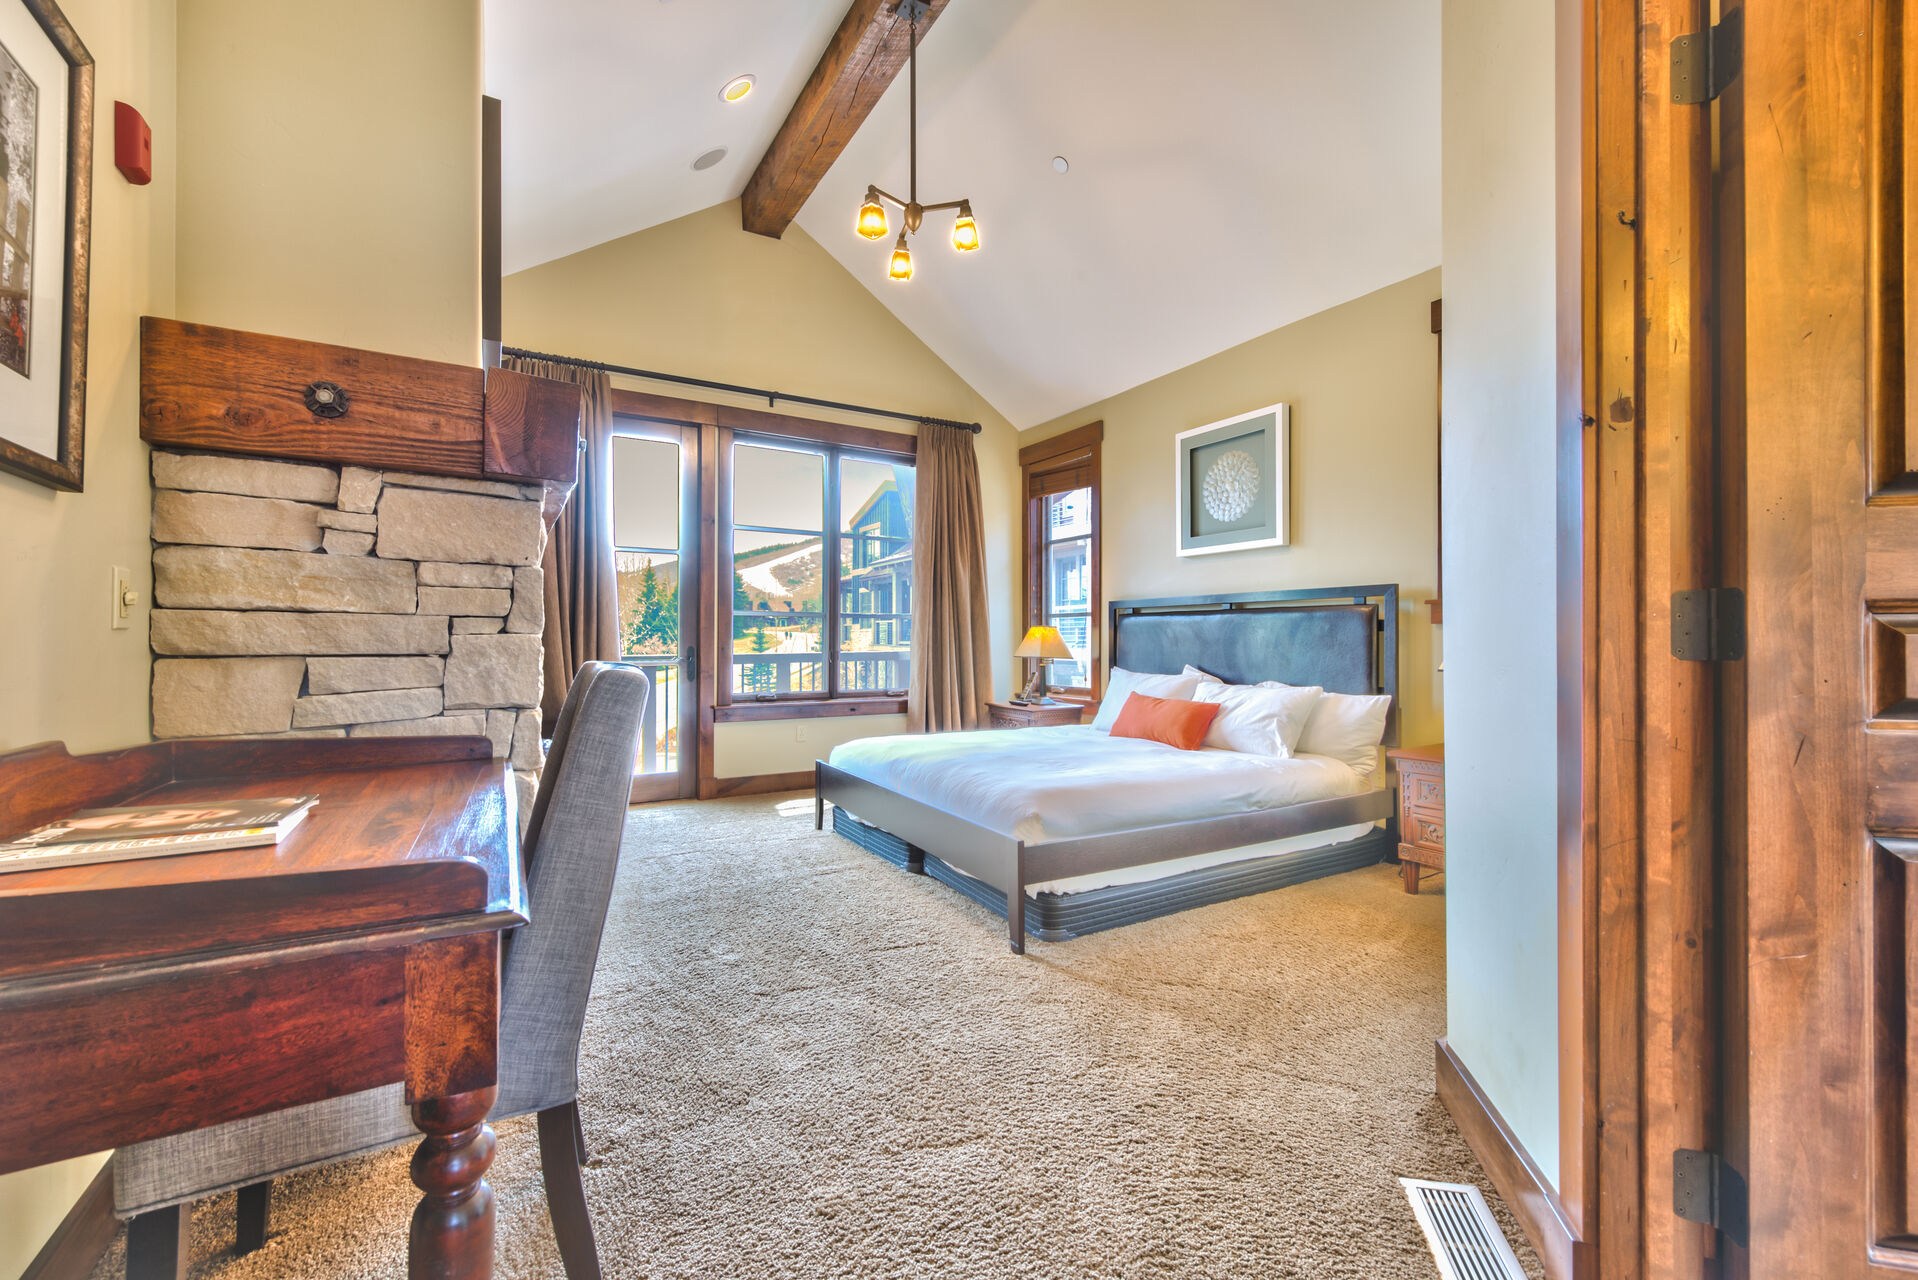 Large Bed and Desk in the Mountain View Bedroom in Our Park City Rentals.